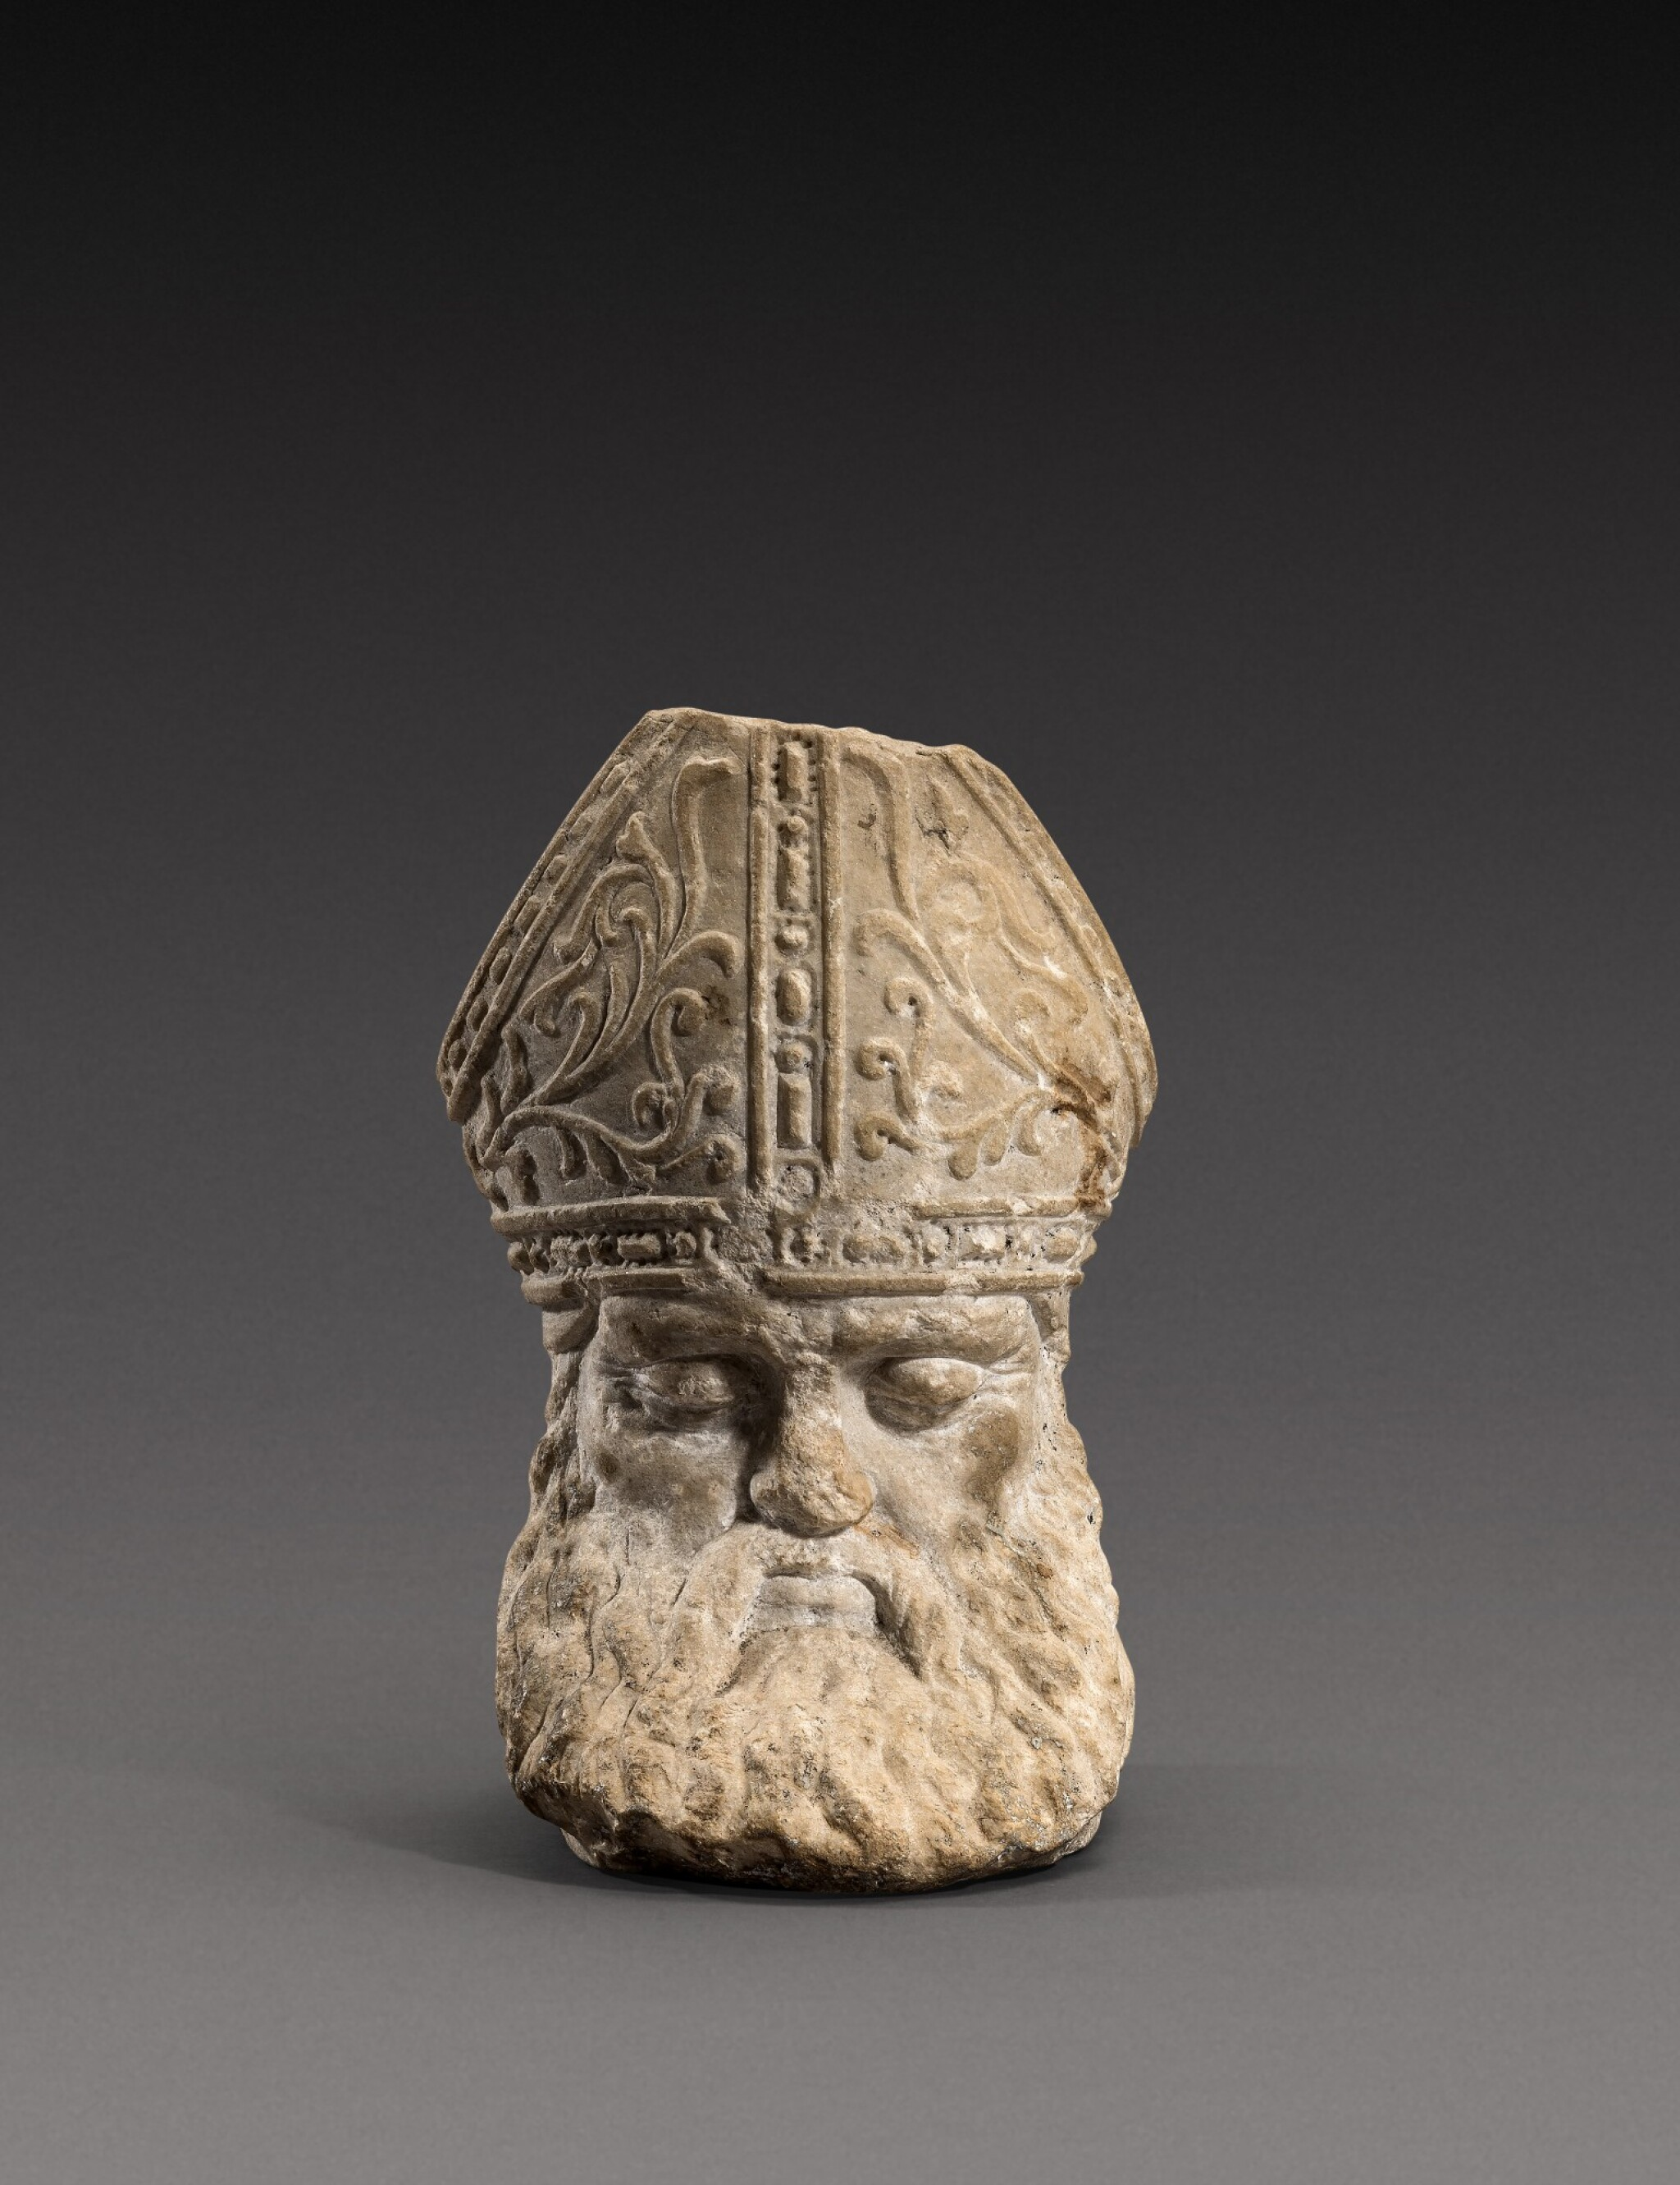 View 1 of Lot 146. Italian, 16th century | Head of a Sleeping Bishop.